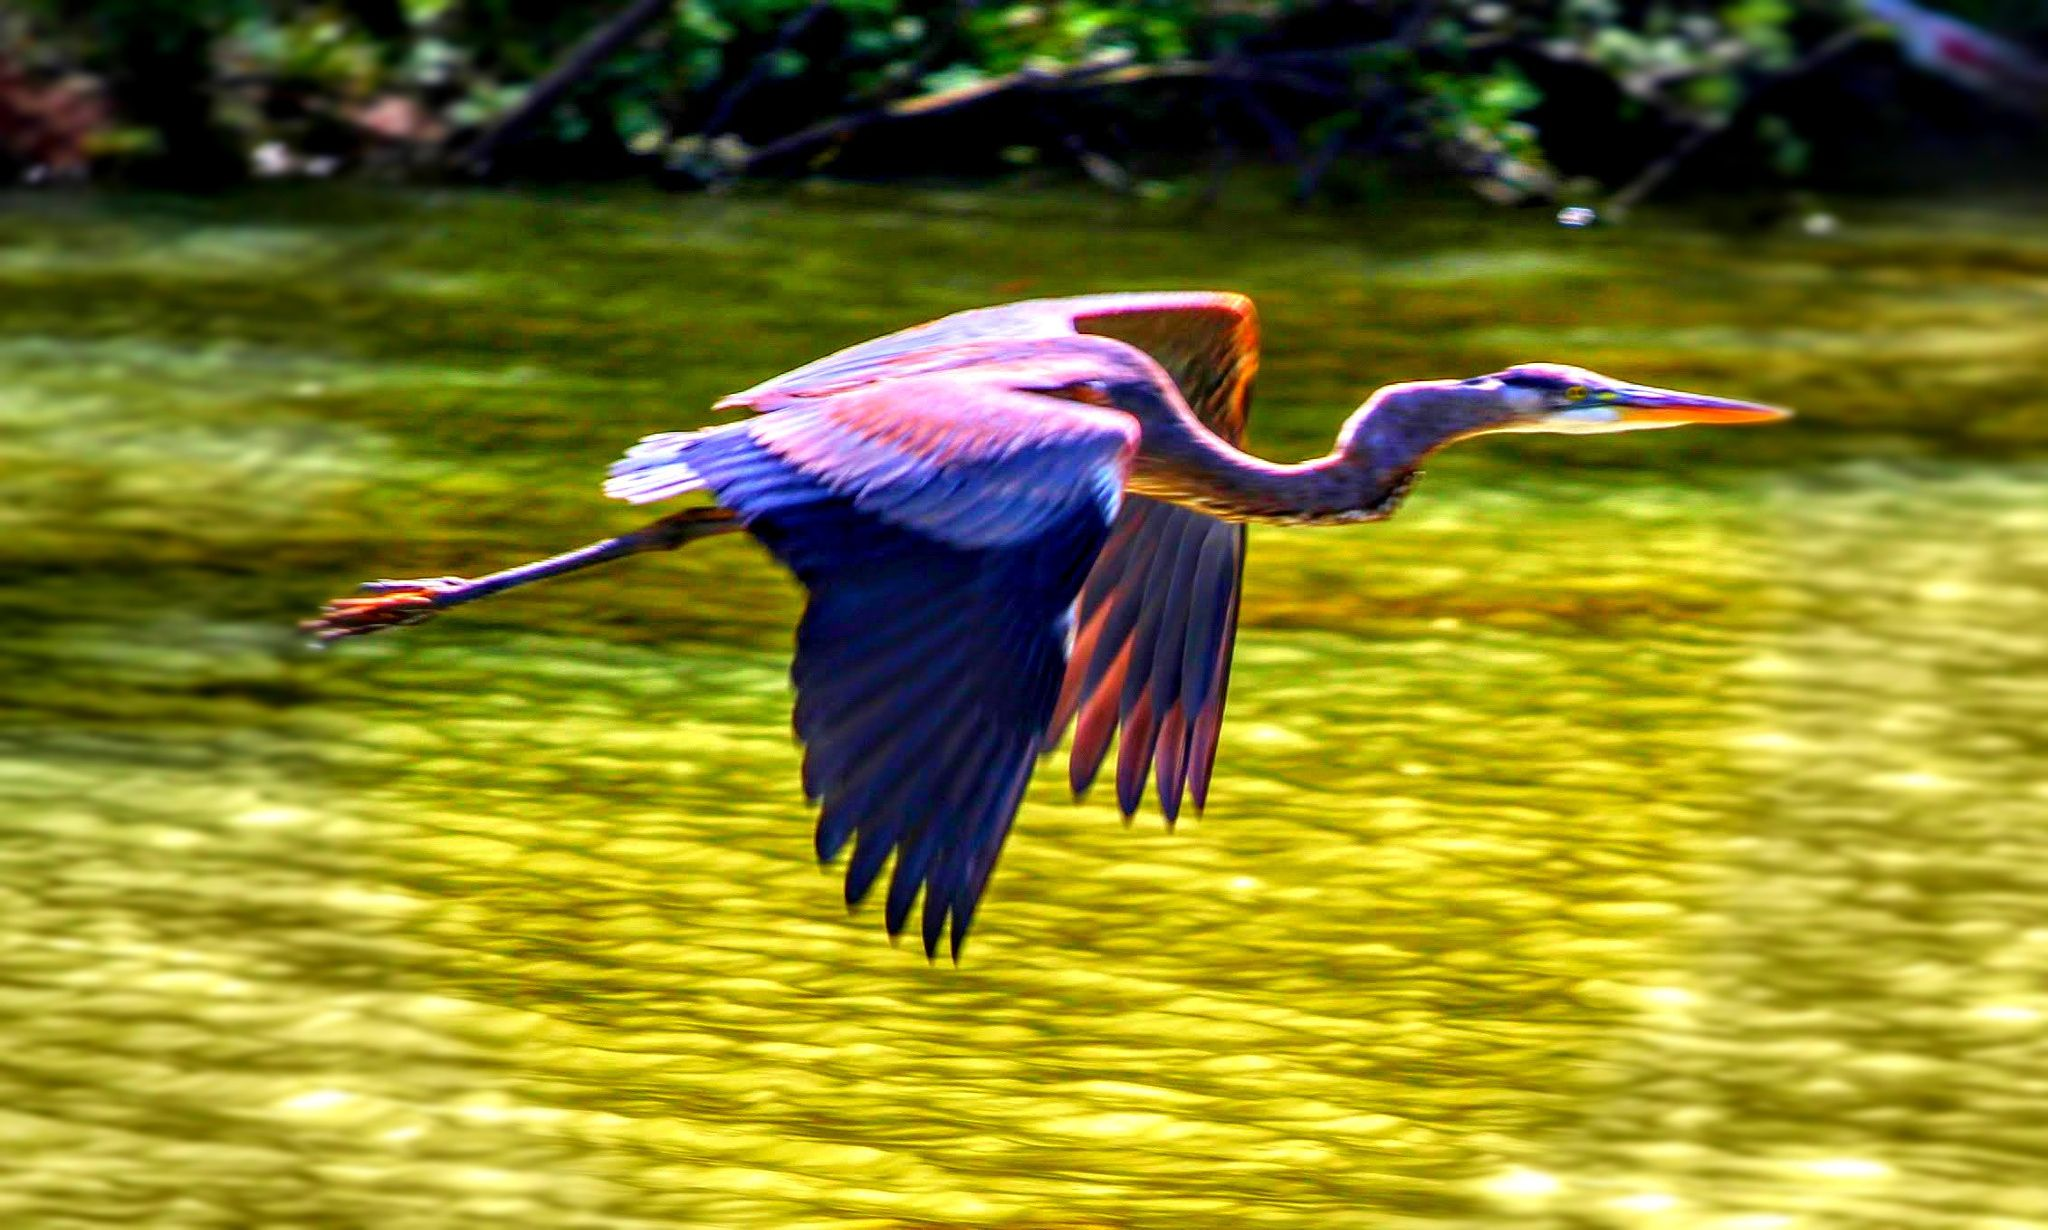 Blue Heron on Lake Oconne - Blue Heron on Lake Oconne, GA by Temba